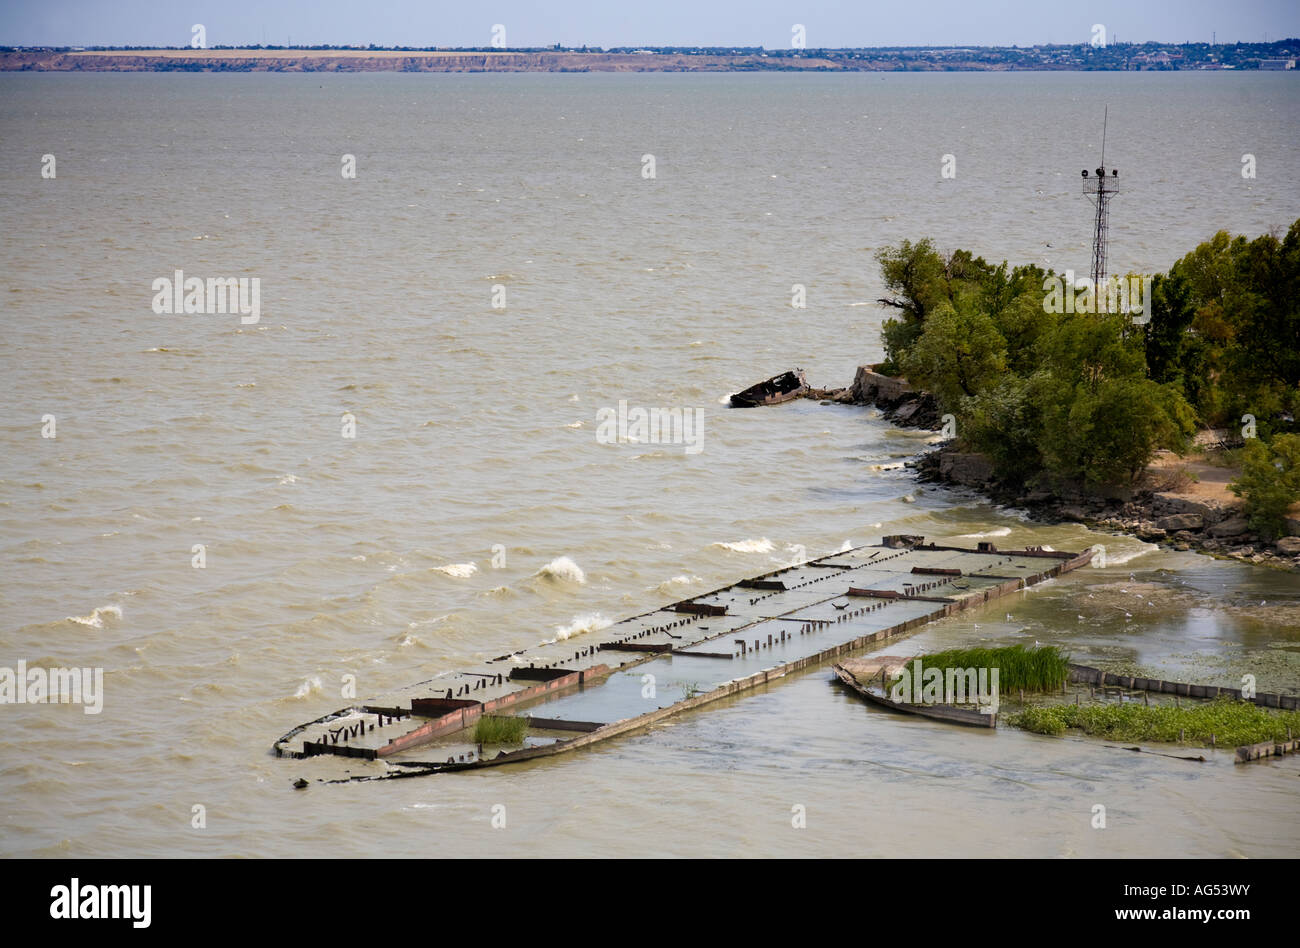 The wreck of a stranded ship at the bank of the Dniester Liman at Bilhorod Dnistrovskyi / Ukraine - Stock Image